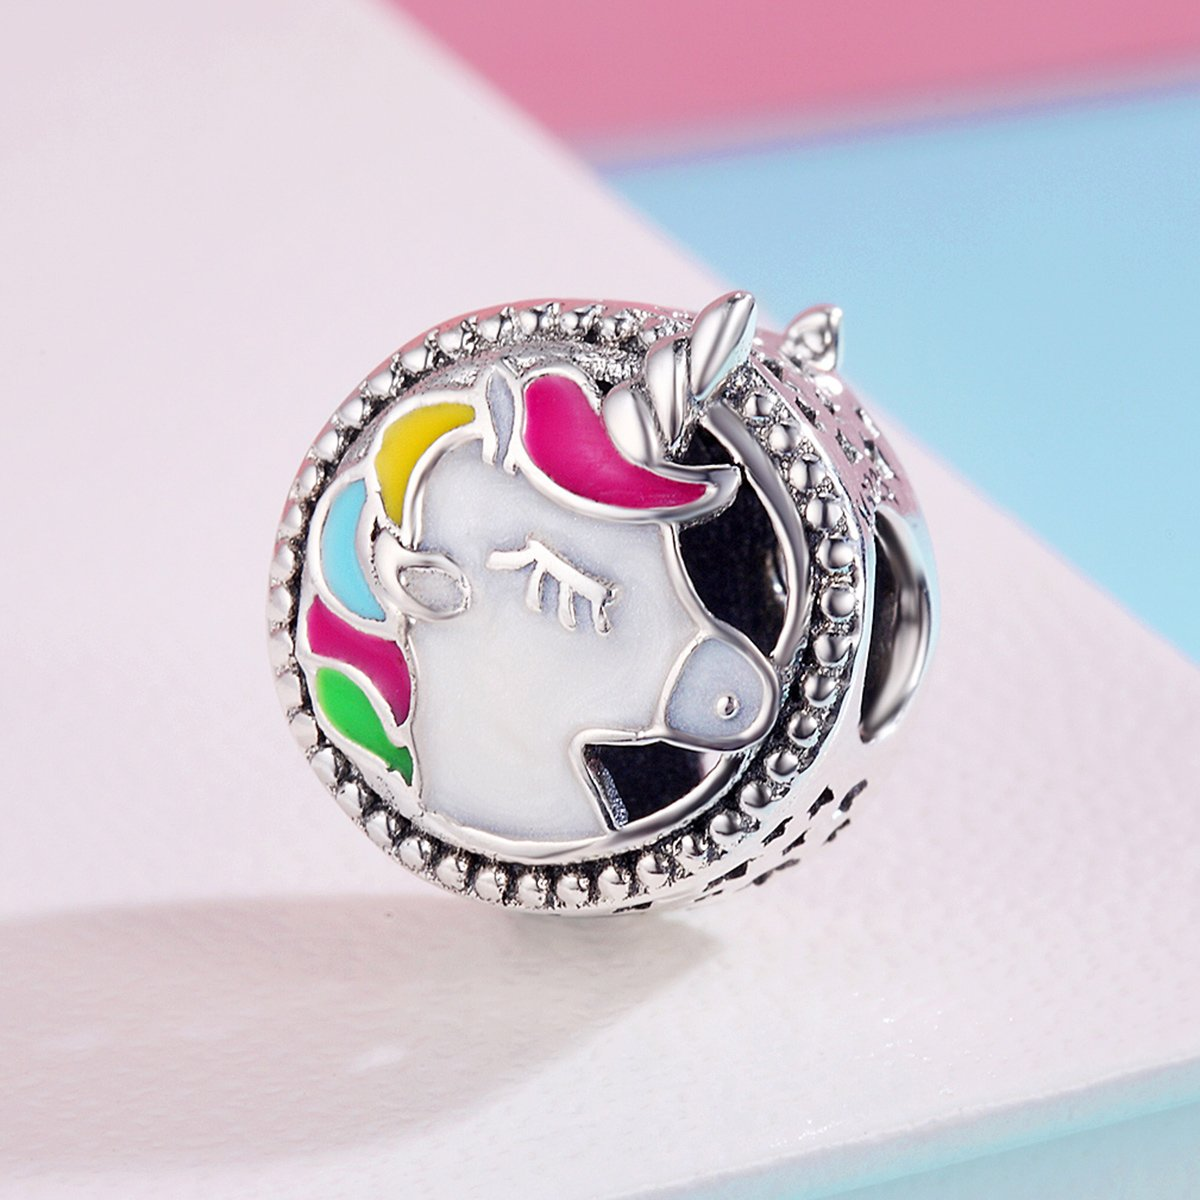 BAMOER 925 Sterling Silver Unicorn Charm Bead Enamel Charm Fit Bracelet Necklace Perfect Jewelry For Women Girls by BAMOER (Image #4)